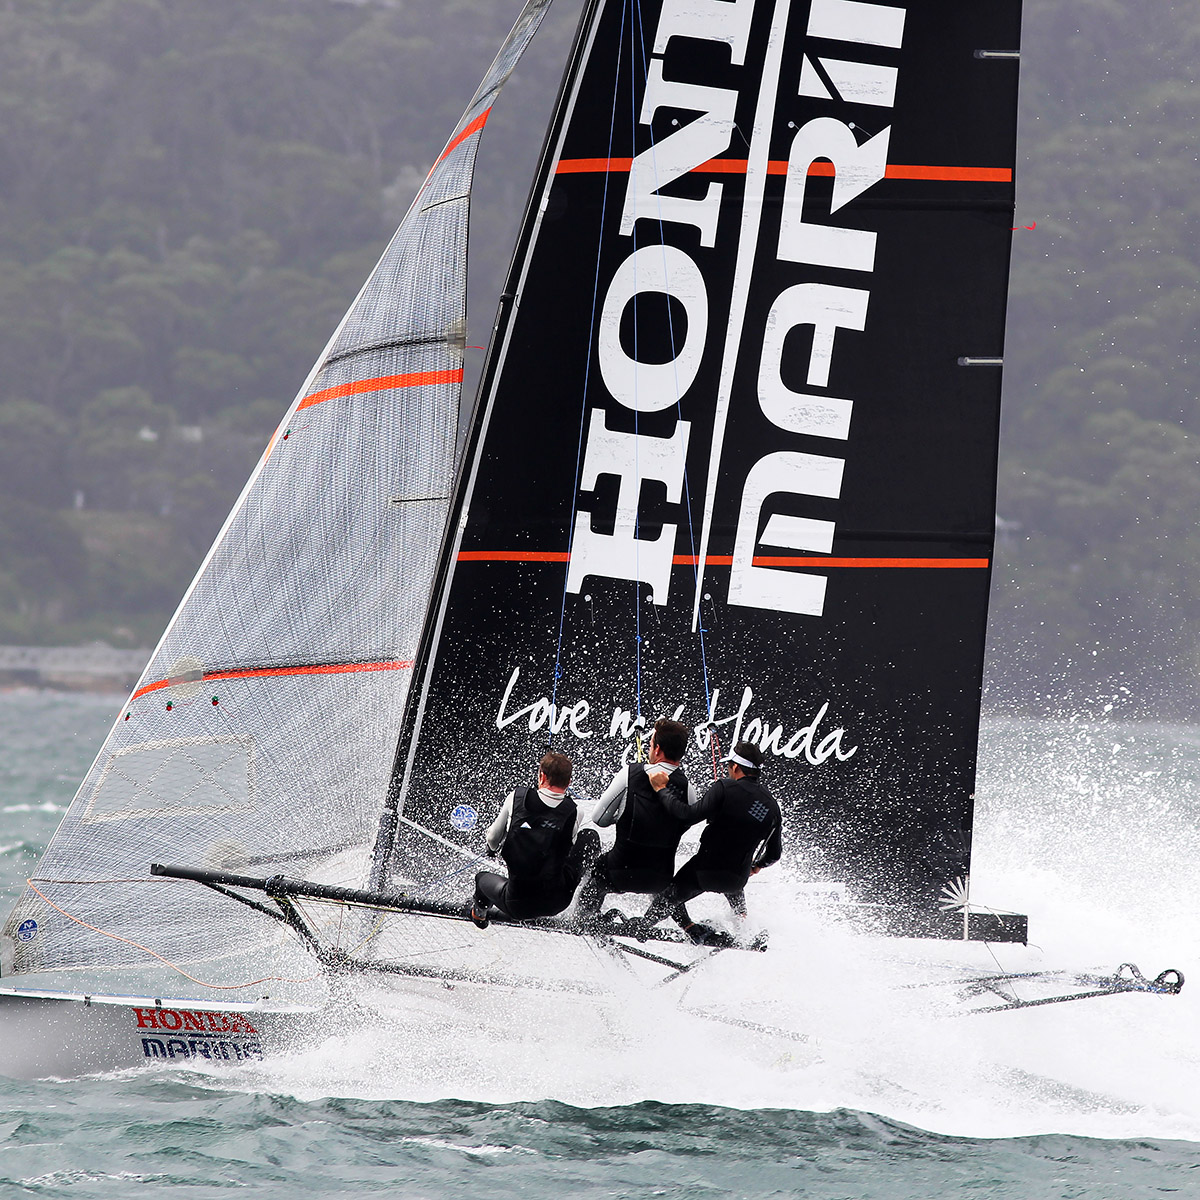 Honda Marine accelerates after a mark rounding off Shark Island in a SE breeze. Photo Michael Chittenden.